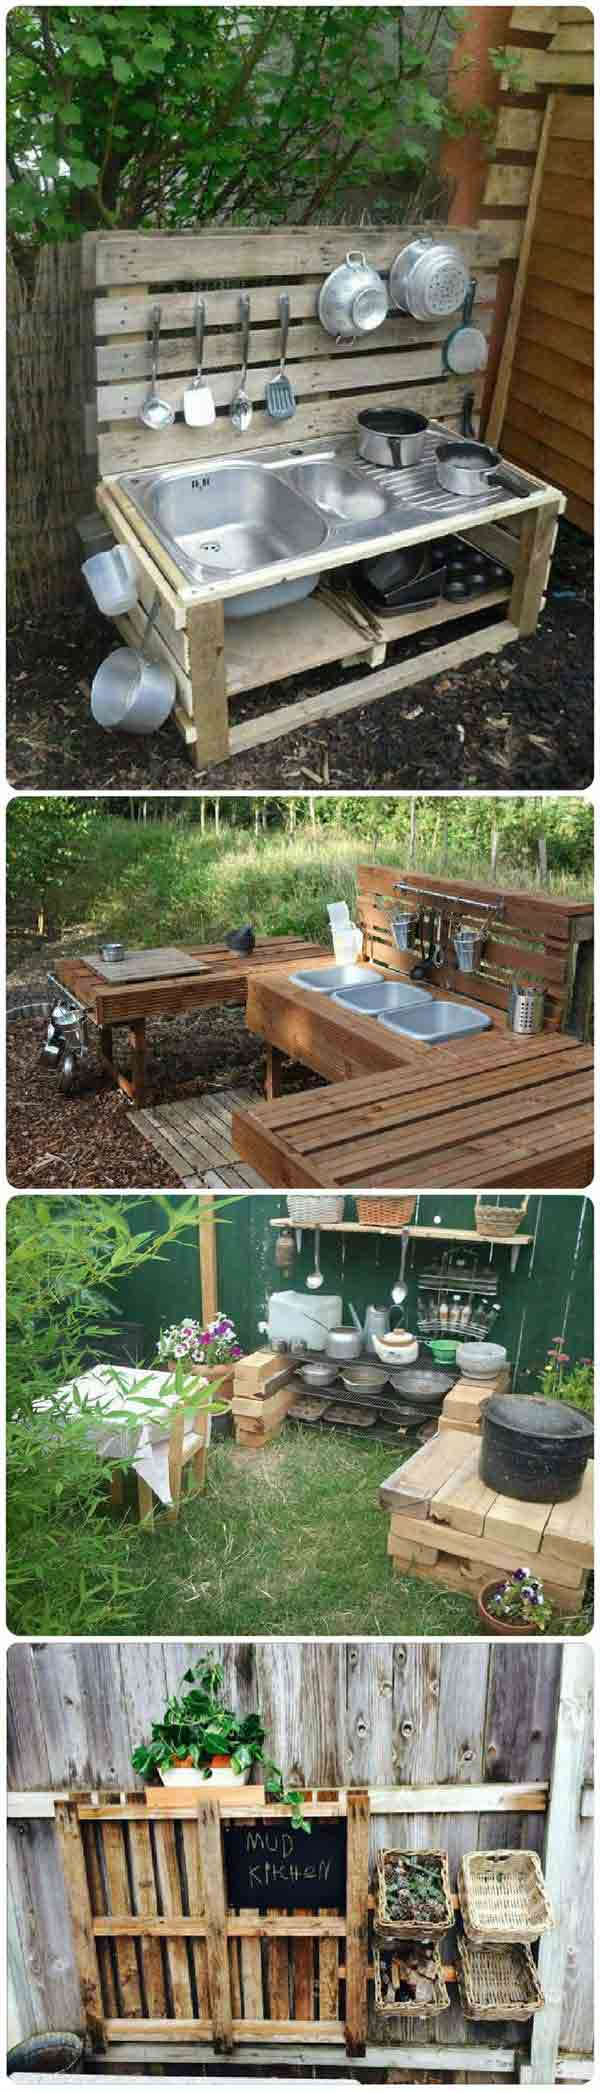 25 Playful DIY Backyard Projects To Surprise Your Kids ... on Diy Backyard Remodel  id=37509